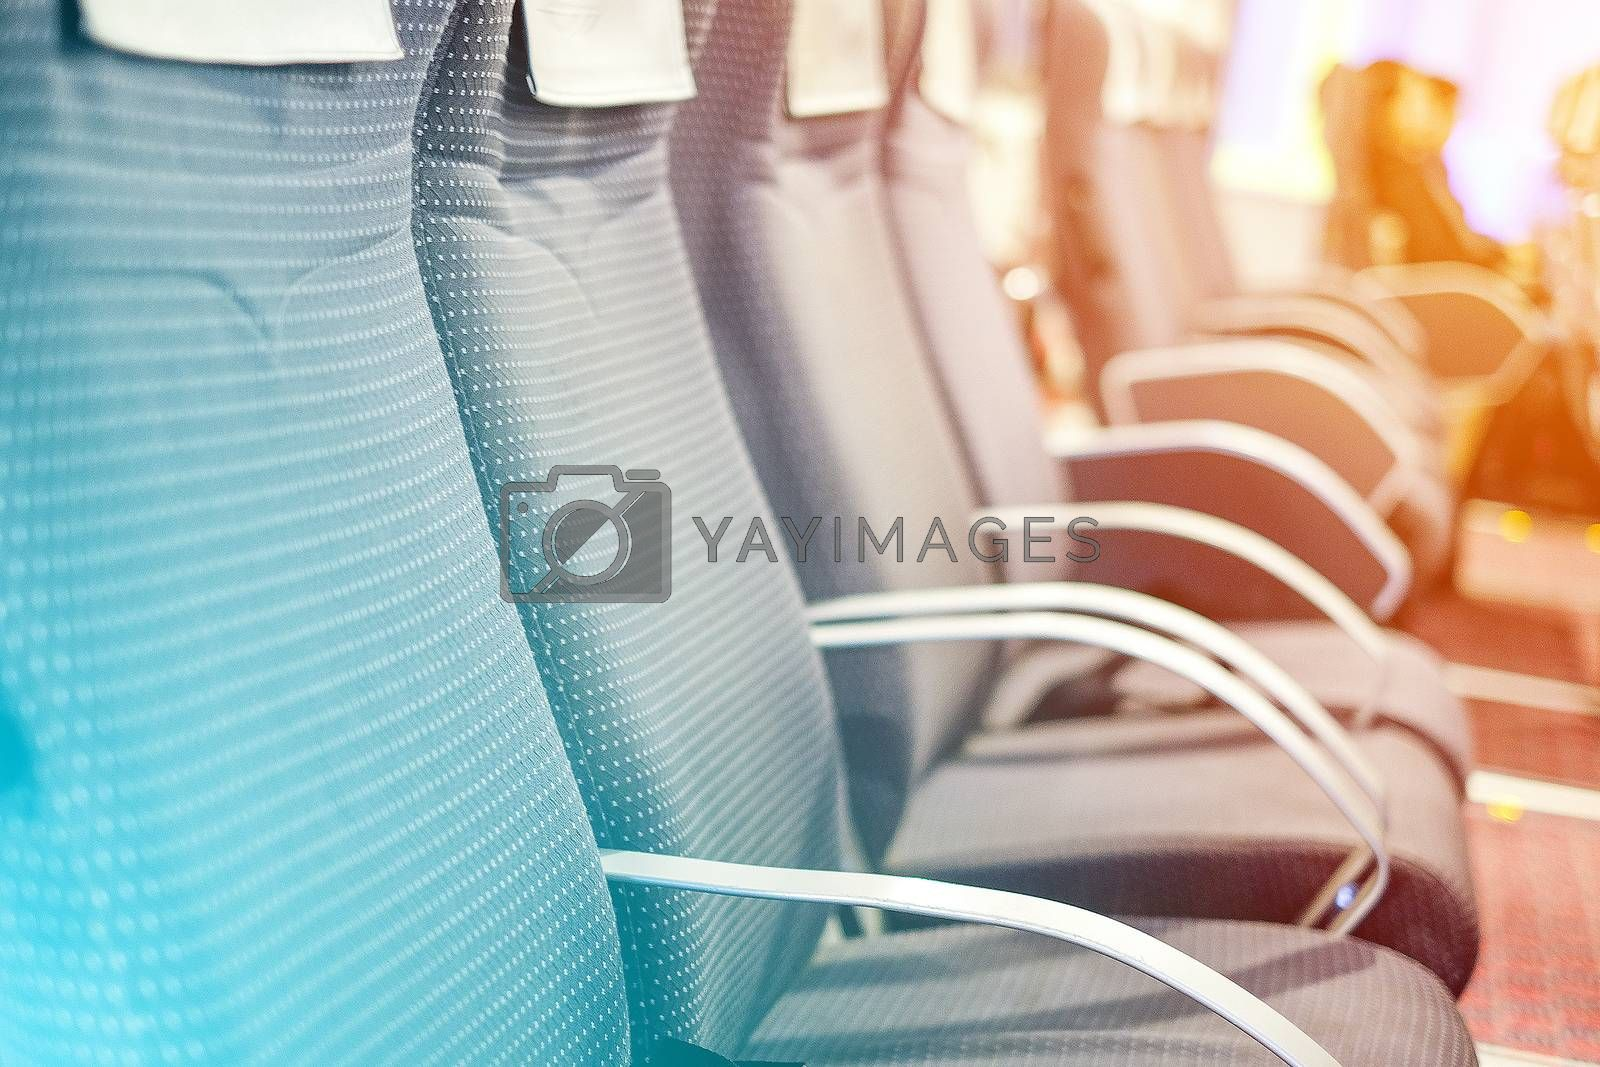 Passengers Seat in ferry boat